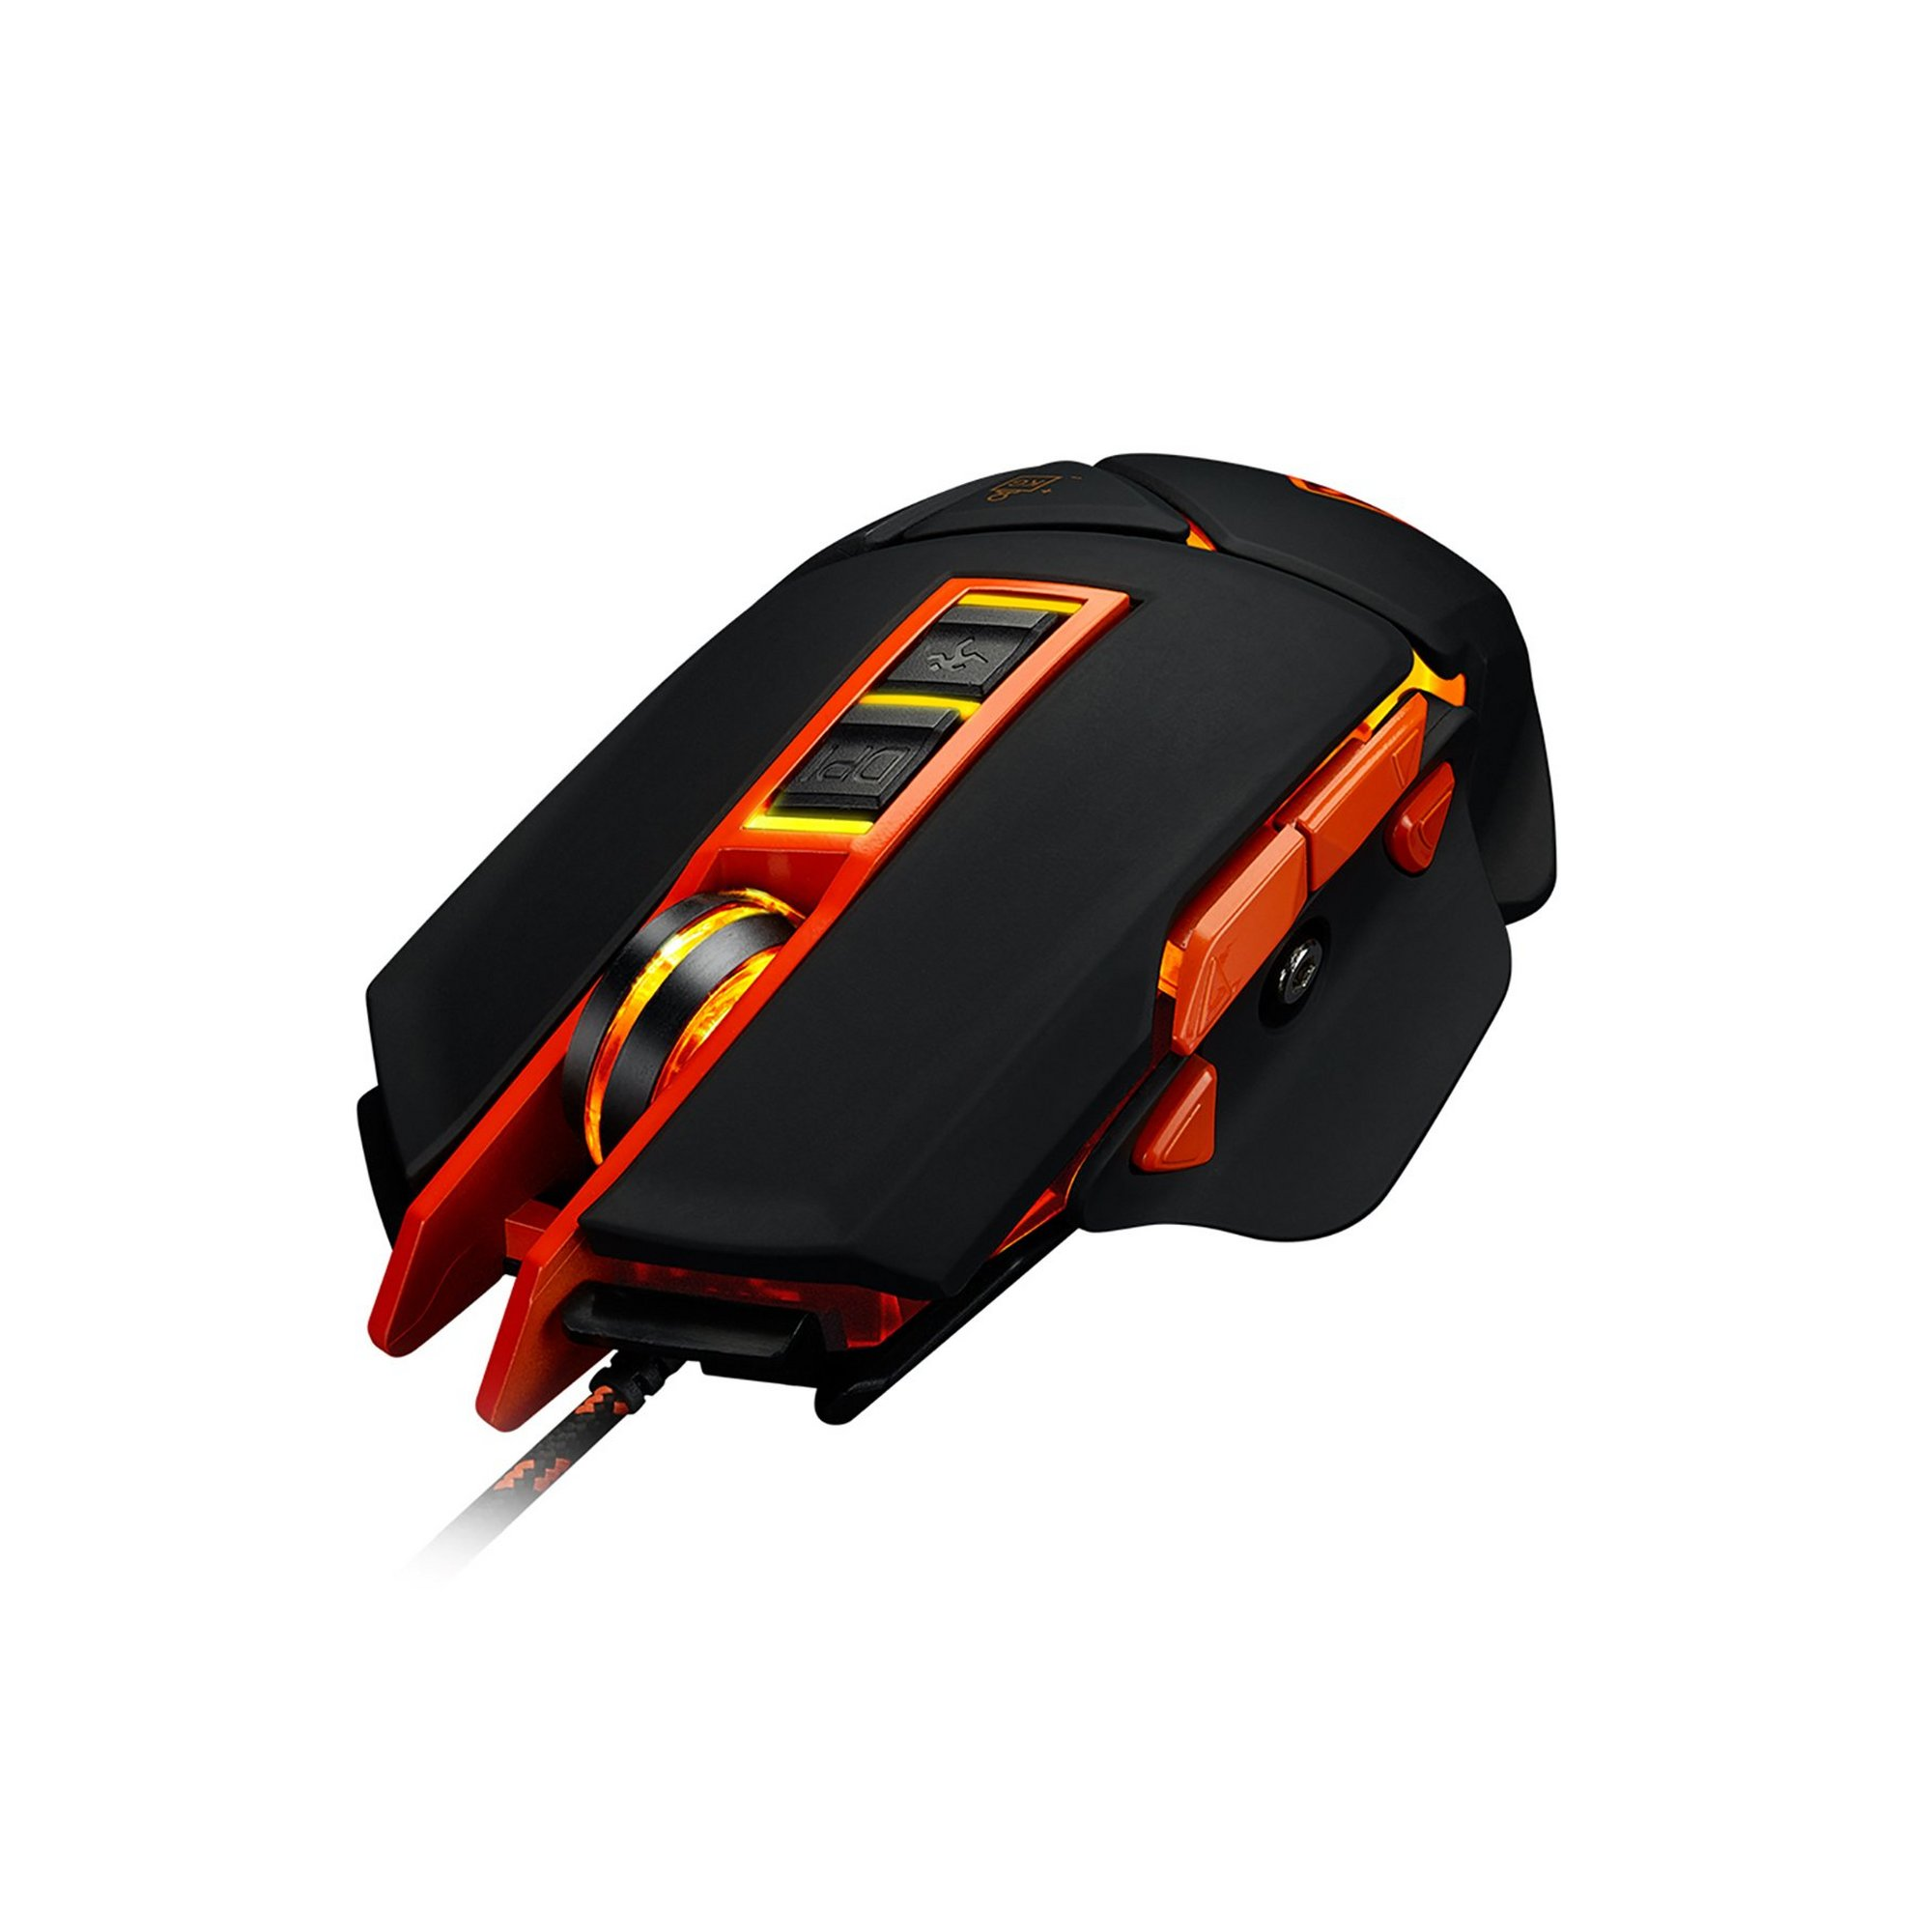 Image of Canyon Wired 9 Button USB LED Gaming Mouse with Adjustable DPI